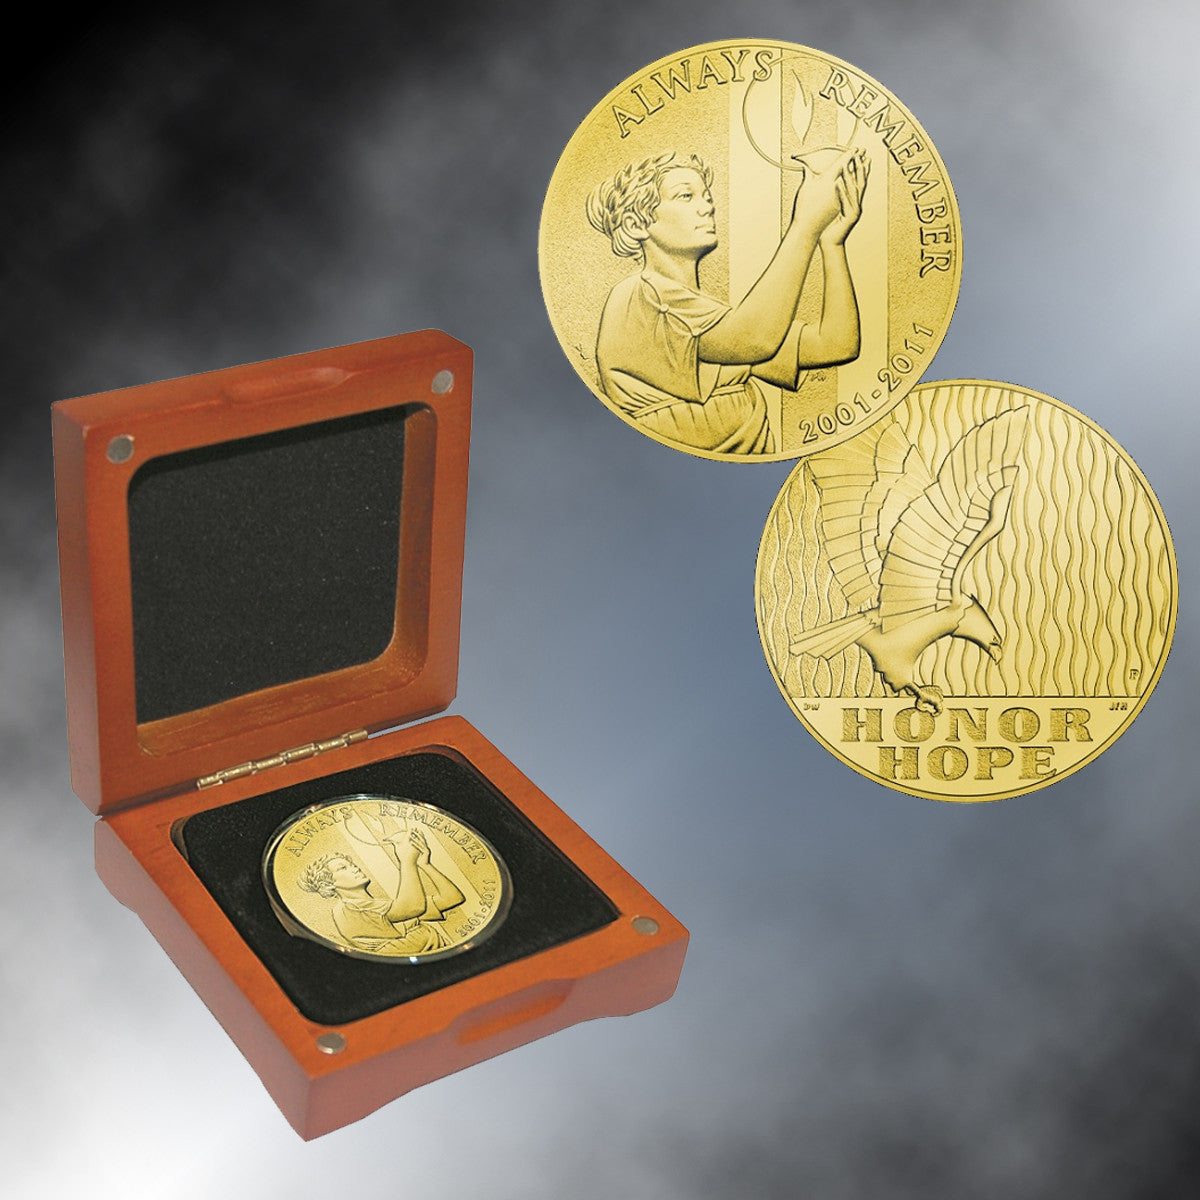 9/11 Silver Proof National Medal Gold Layered